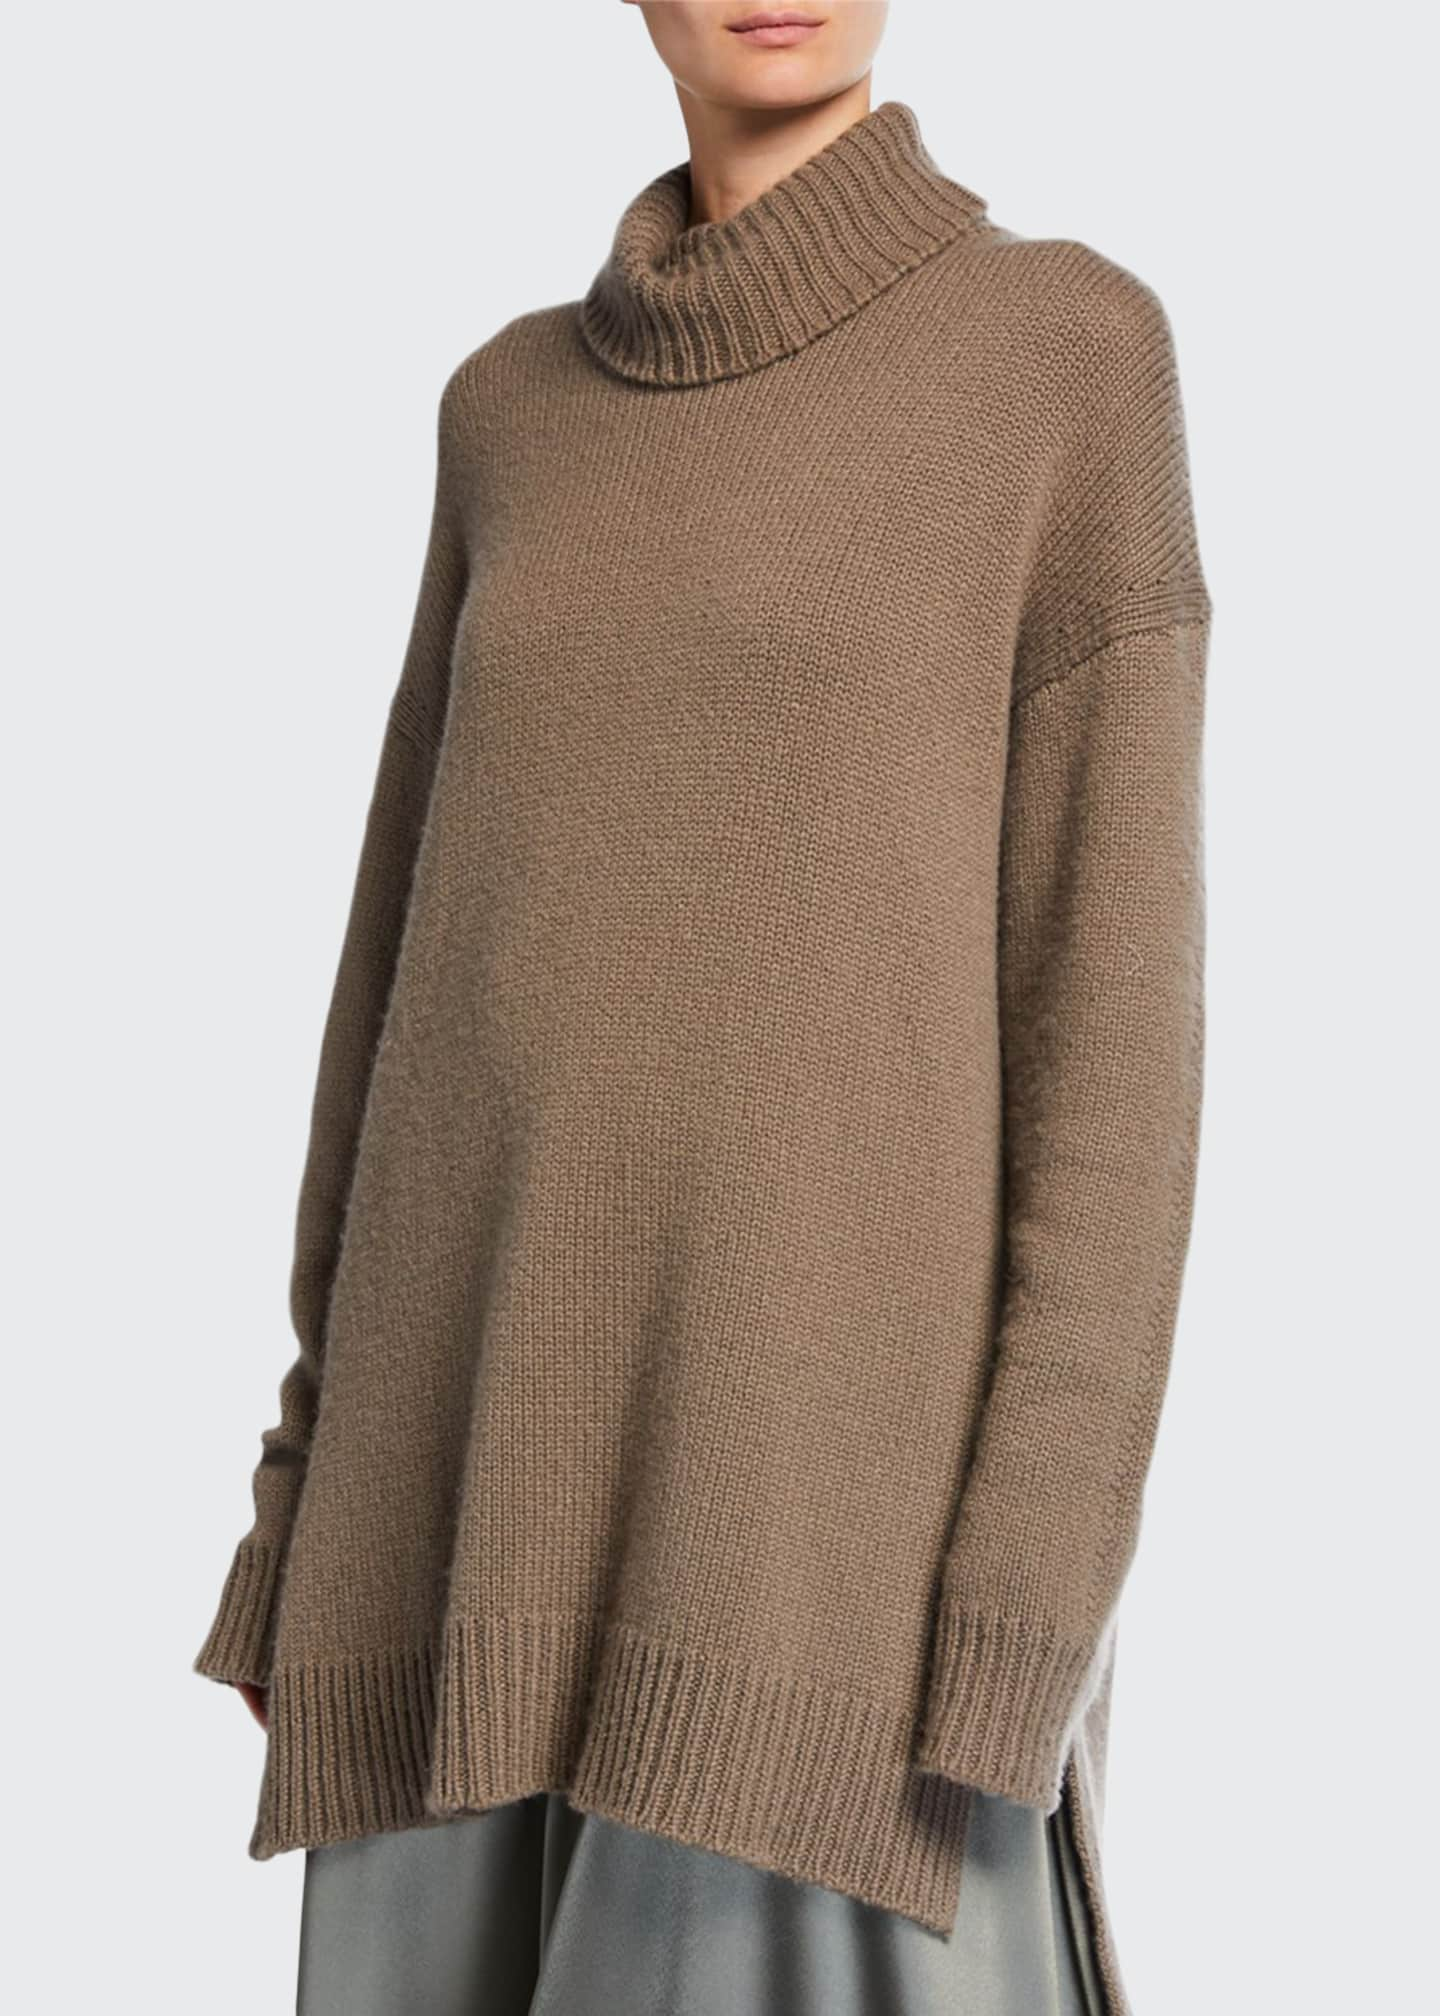 Deveaux New York Cashmere Trapeze Turtleneck Sweater